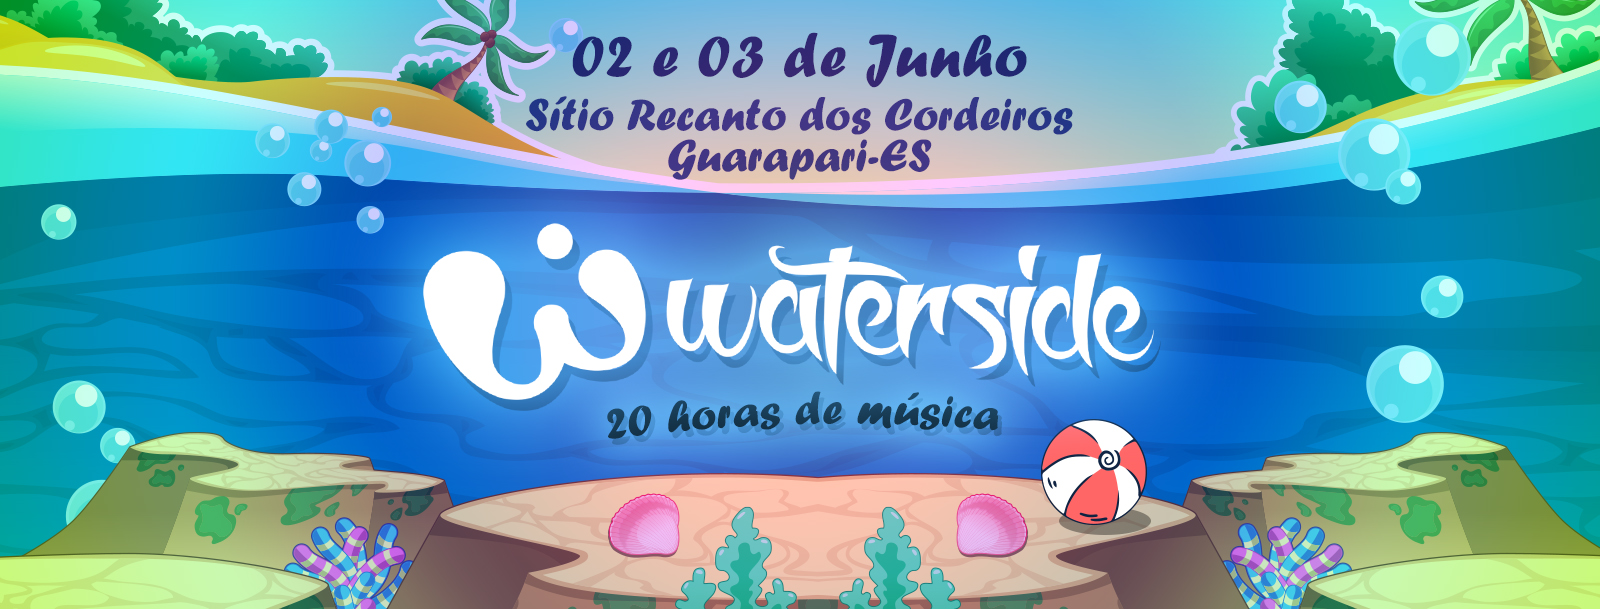 Waterside - 20 horas de música